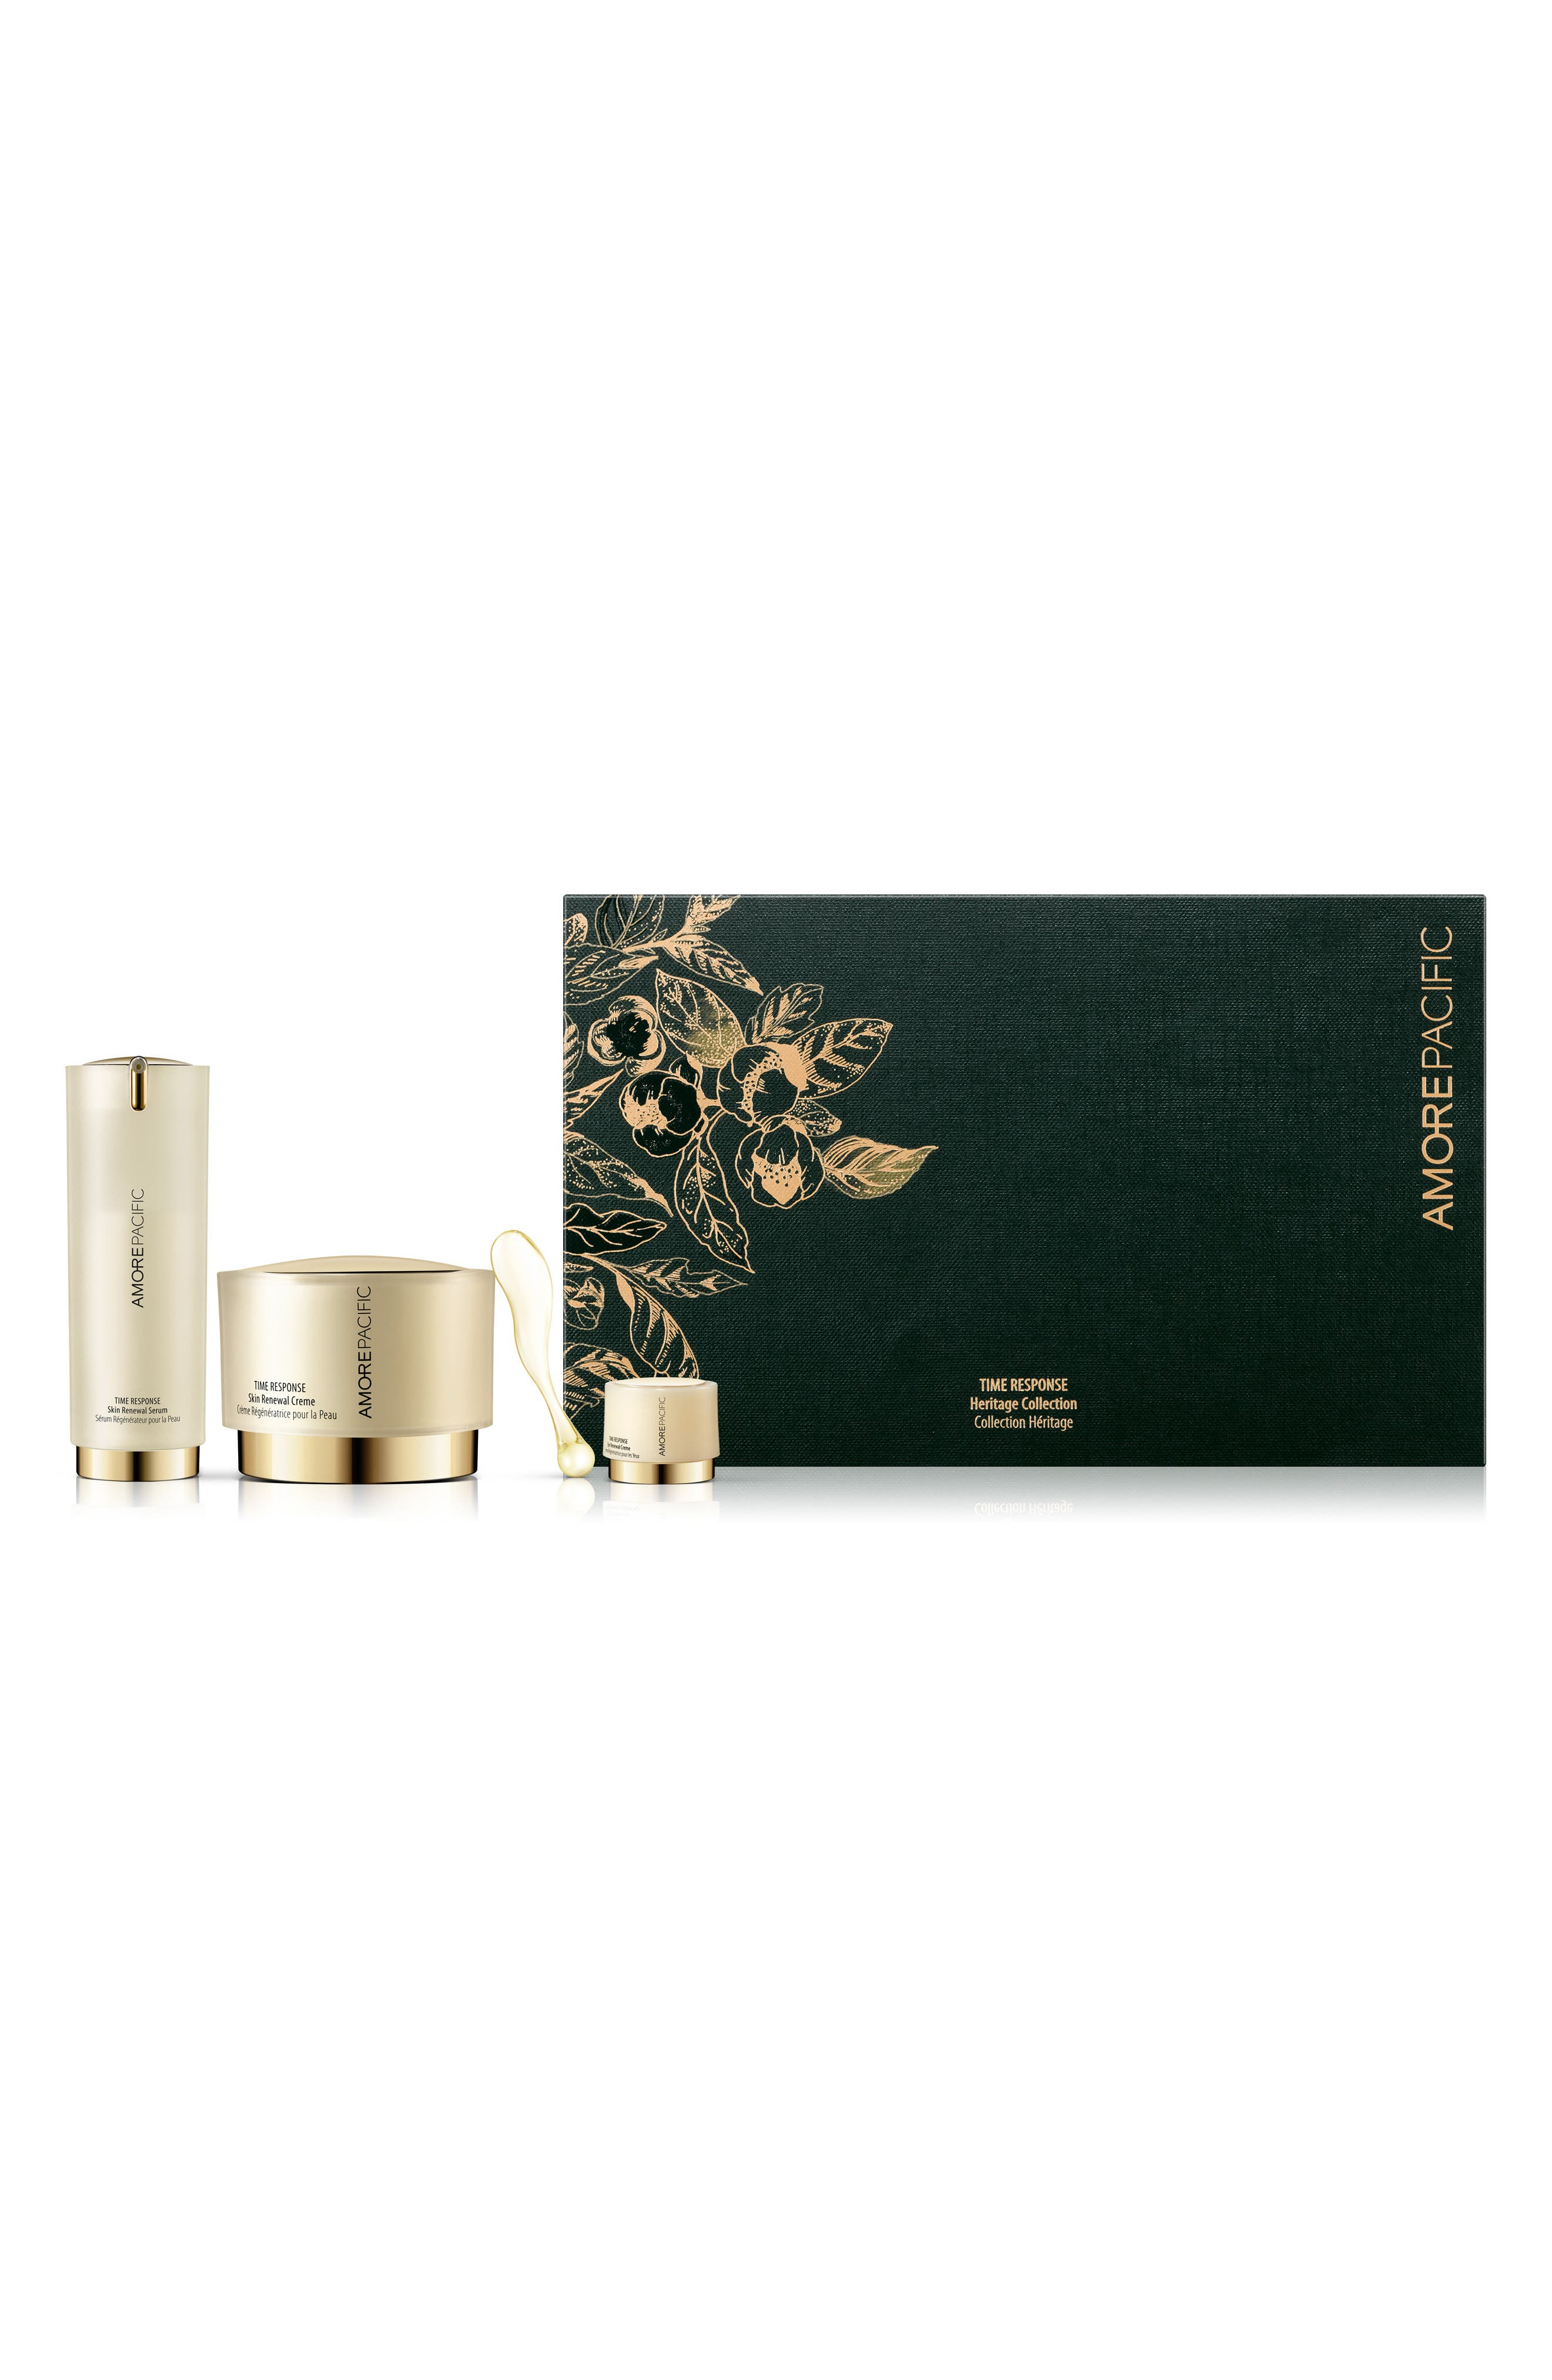 AMOREPACIFIC Time Response Heritage Collection (Limited Edition) ($764.50 Value)